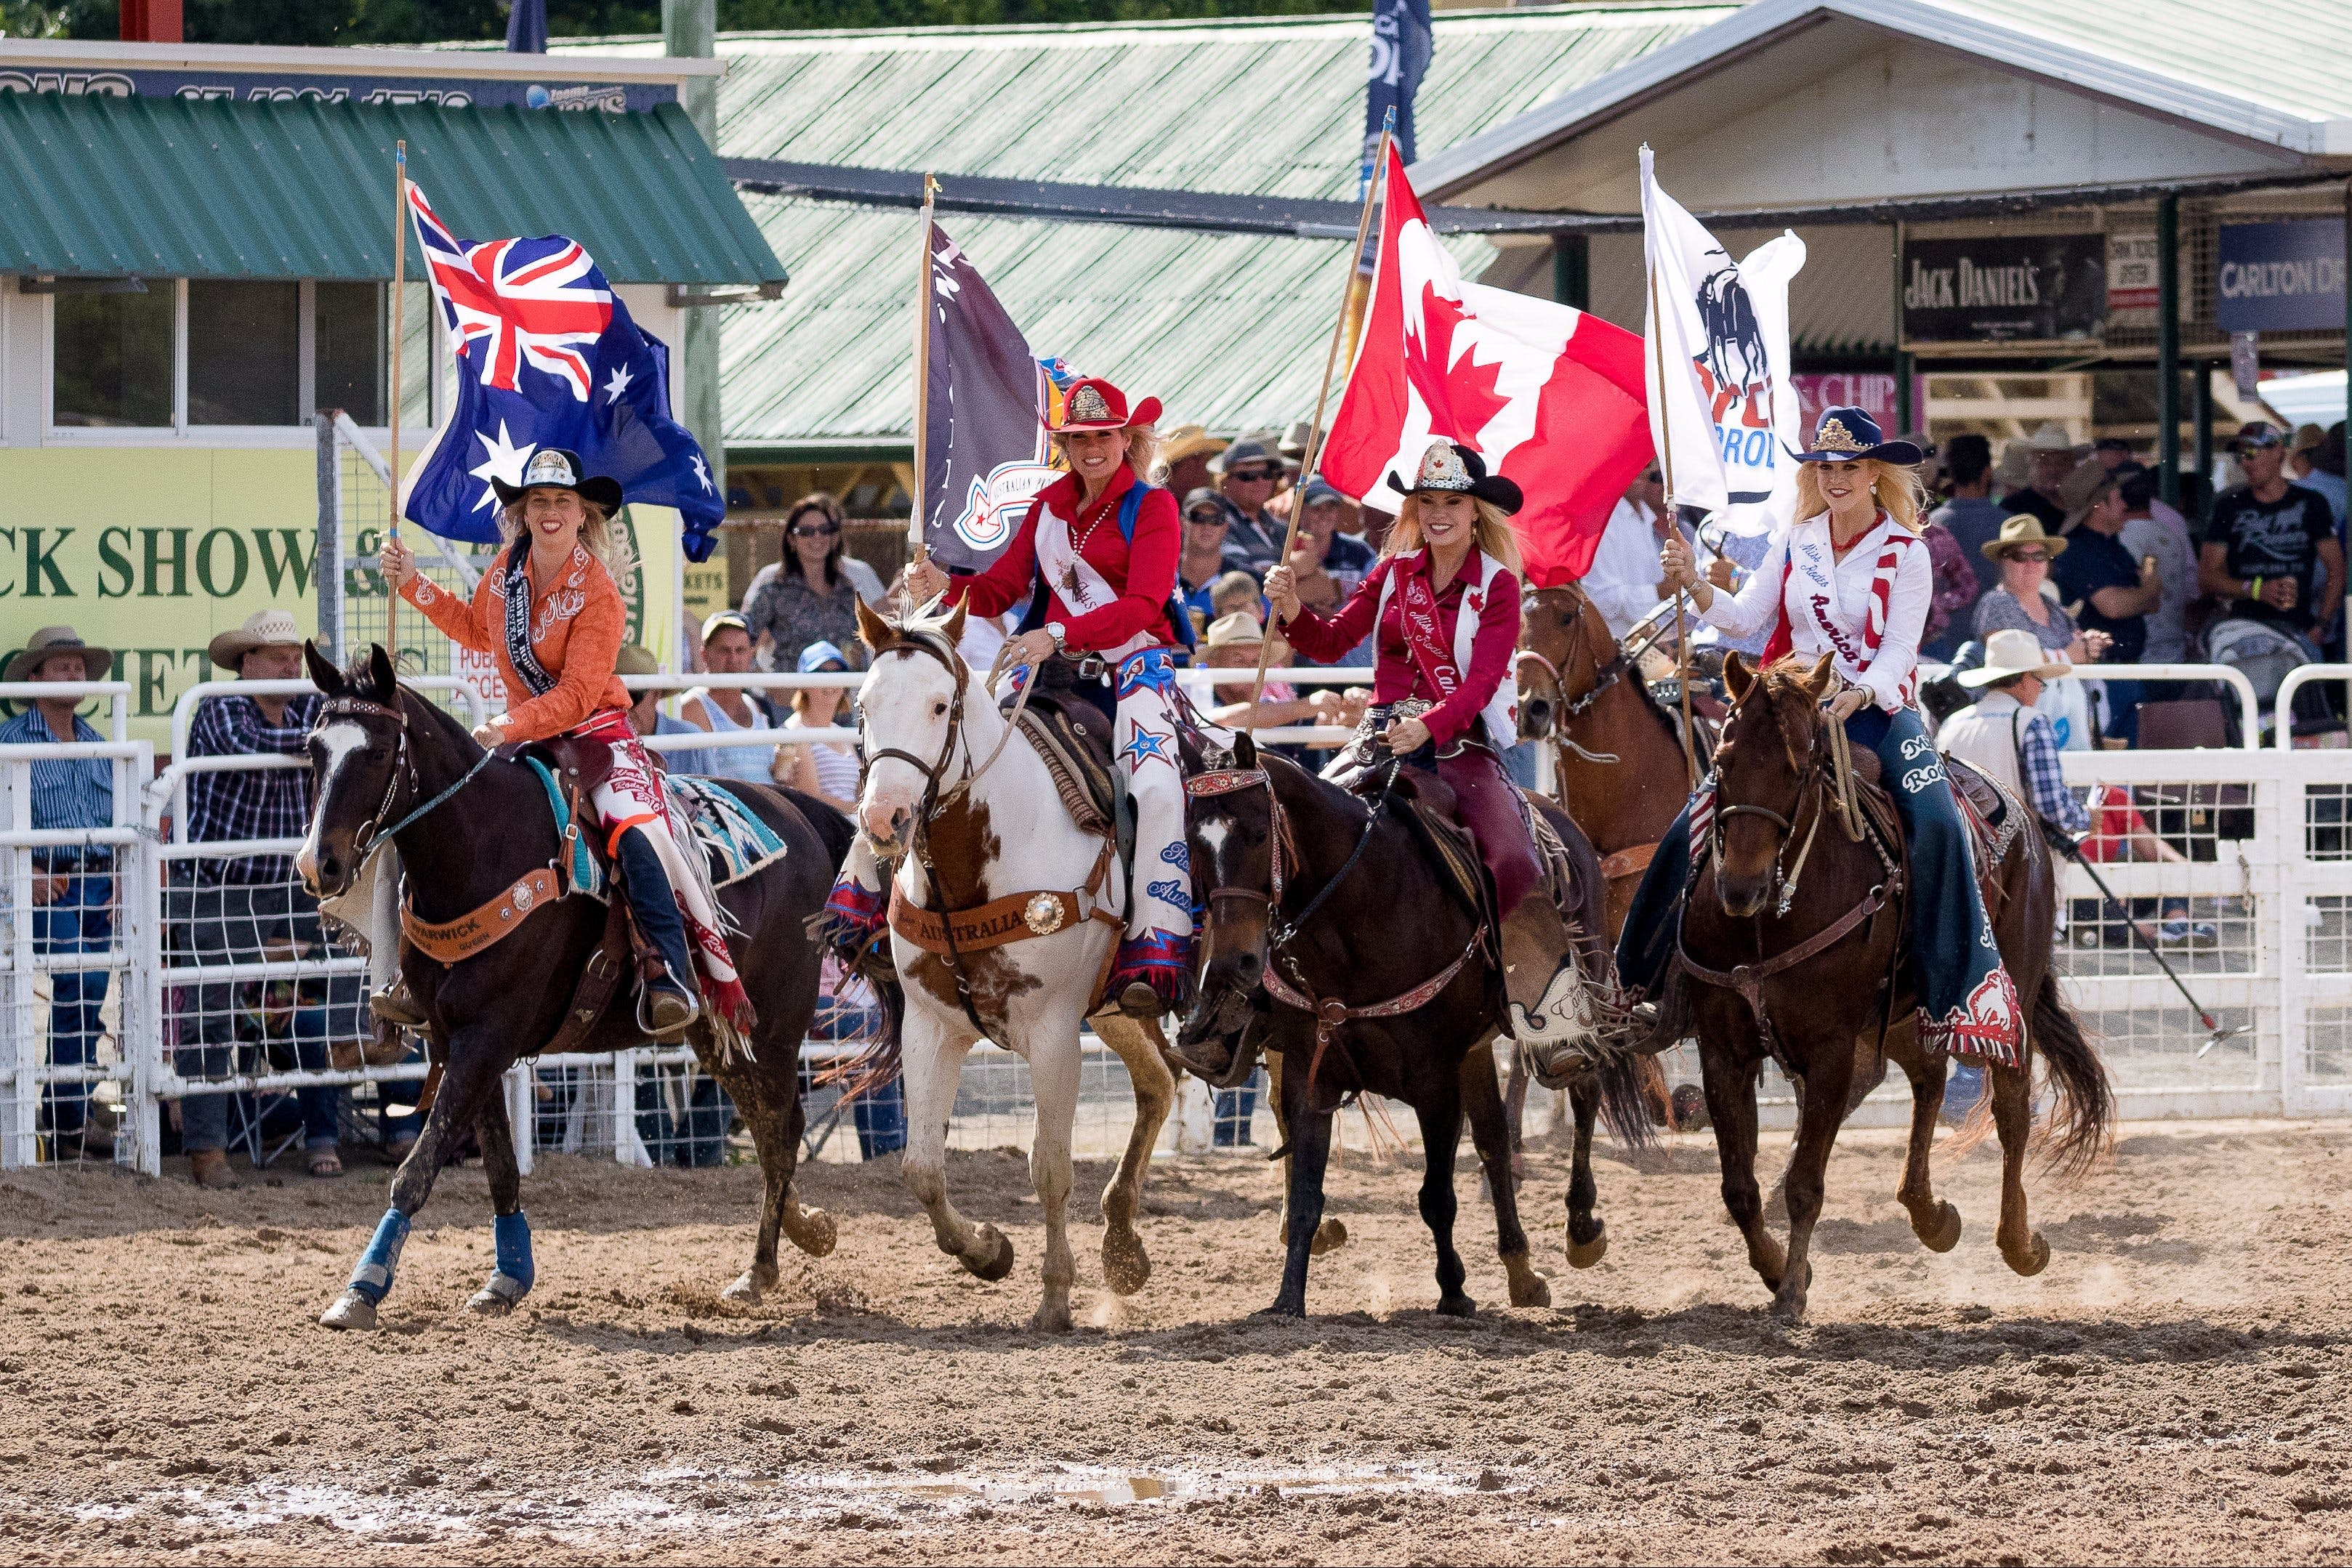 Warwick Rodeo National APRA National Finals and Warwick Gold Cup Campdraft - eAccommodation